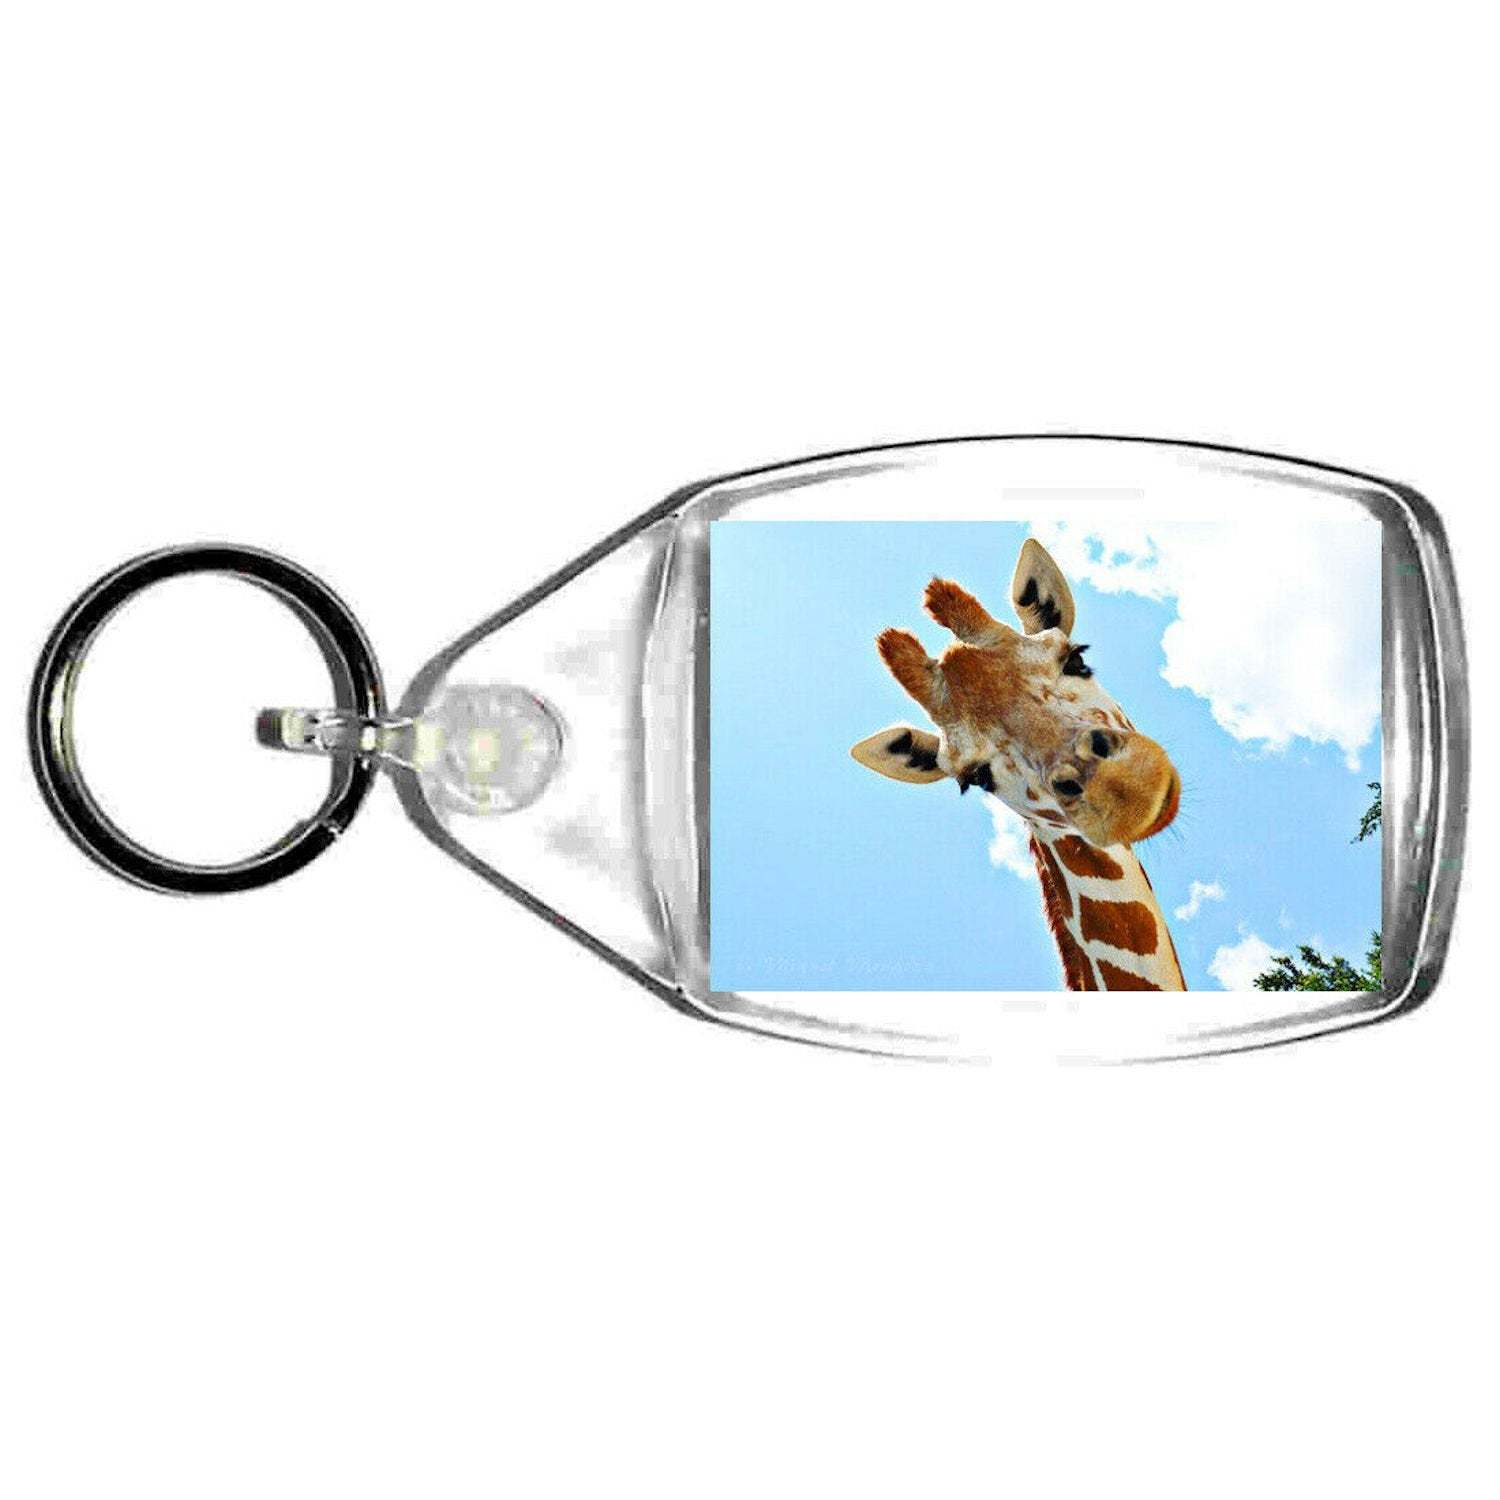 quizzicle giraffe keyring double sided ,giraffe looking keychain, bag clip. tag,